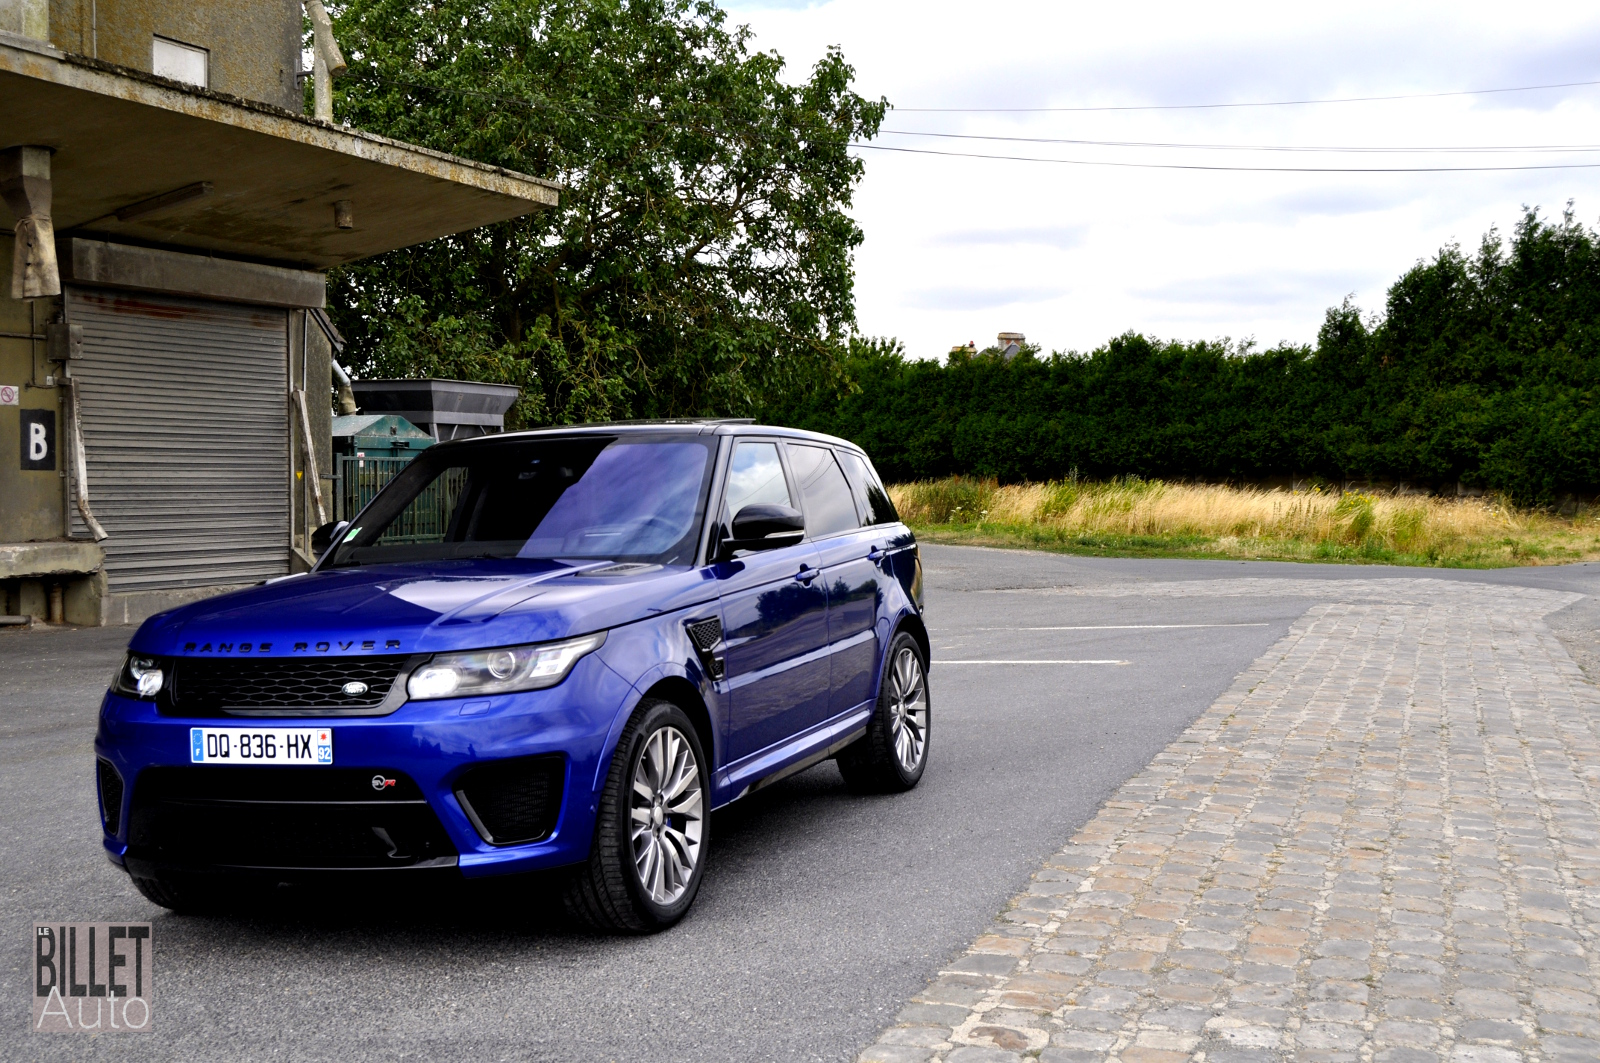 essai range rover sport svr un gros chat dans la gorge le billet auto passion automobile. Black Bedroom Furniture Sets. Home Design Ideas